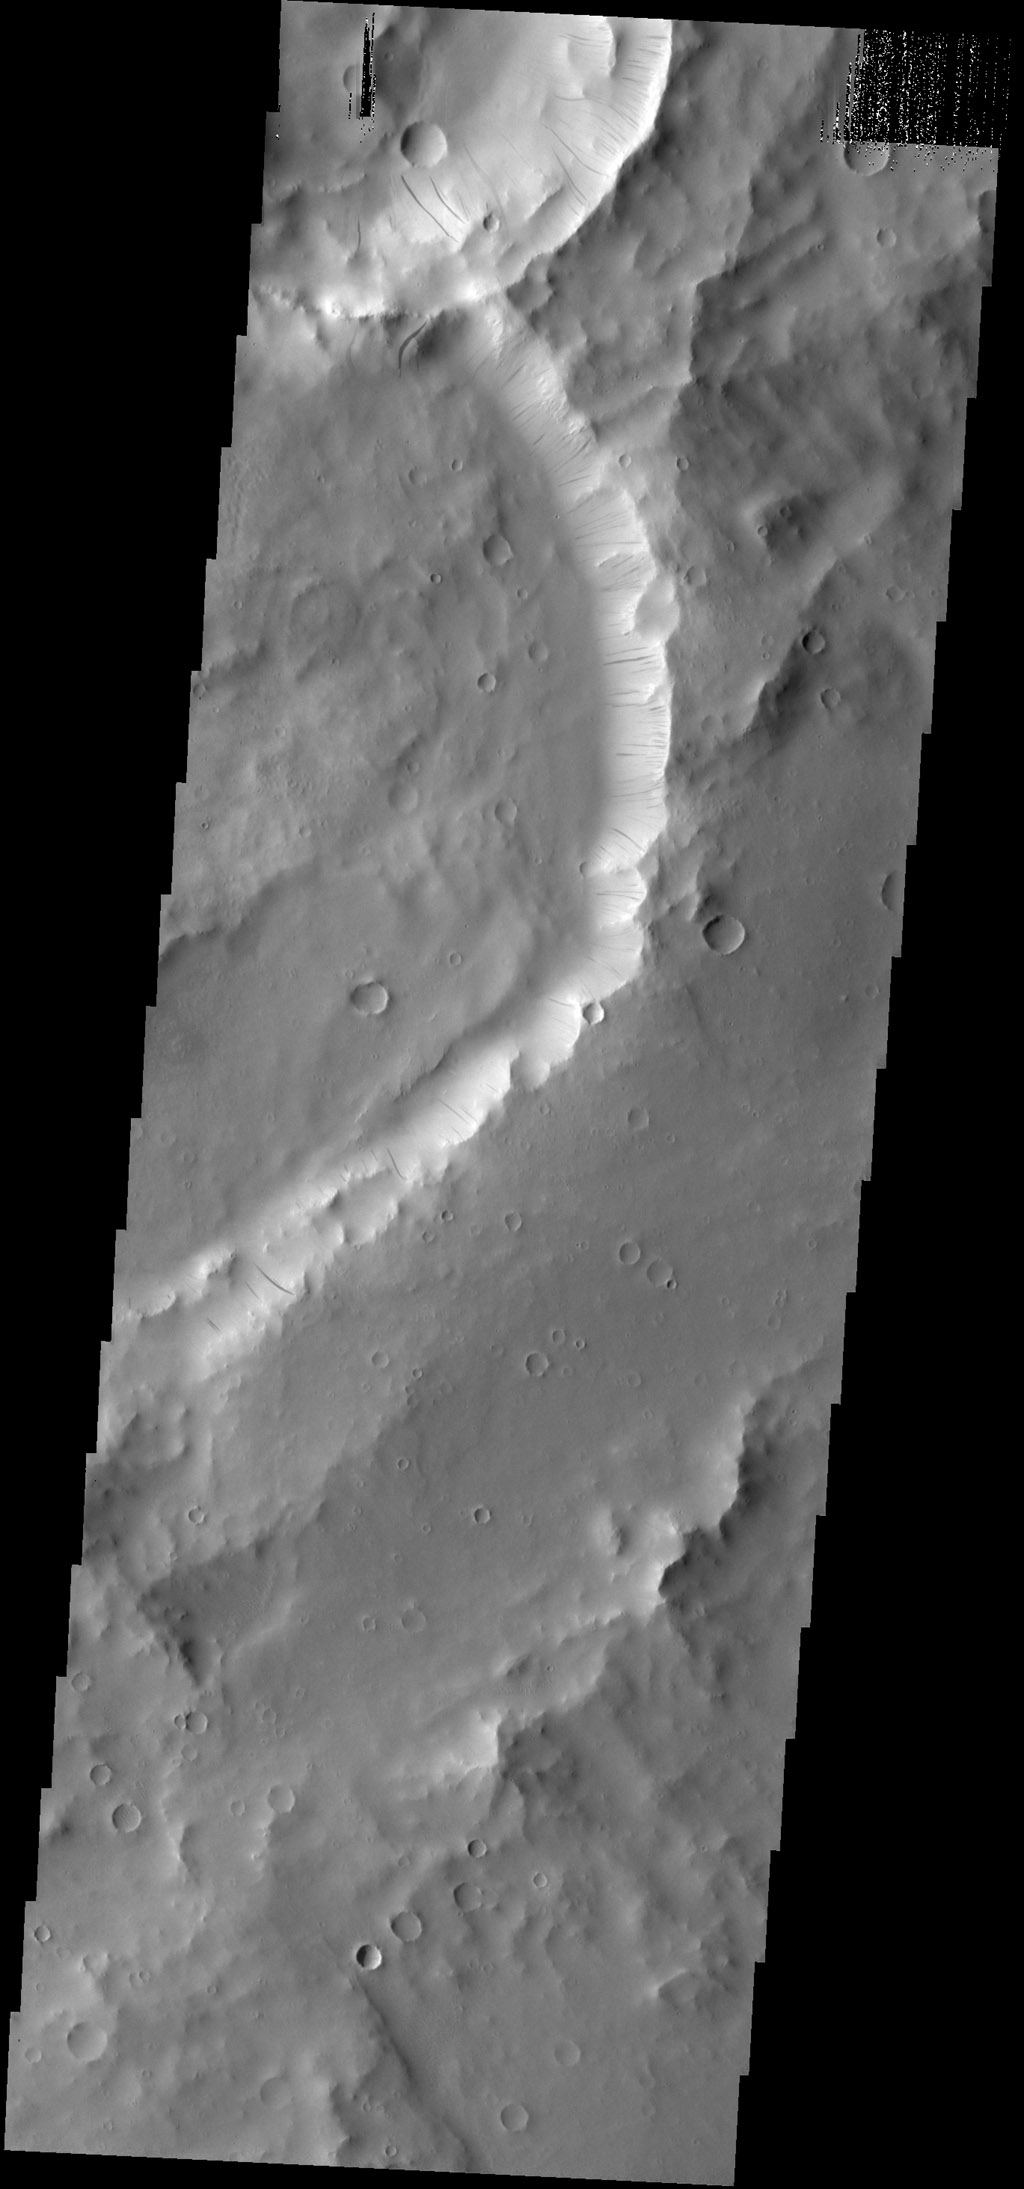 Dark slope streaks mark the inner rim of this unnamed crater in Terra Sabaea, as seen by NASA's 2001 Mars Odyssey spacecraft.